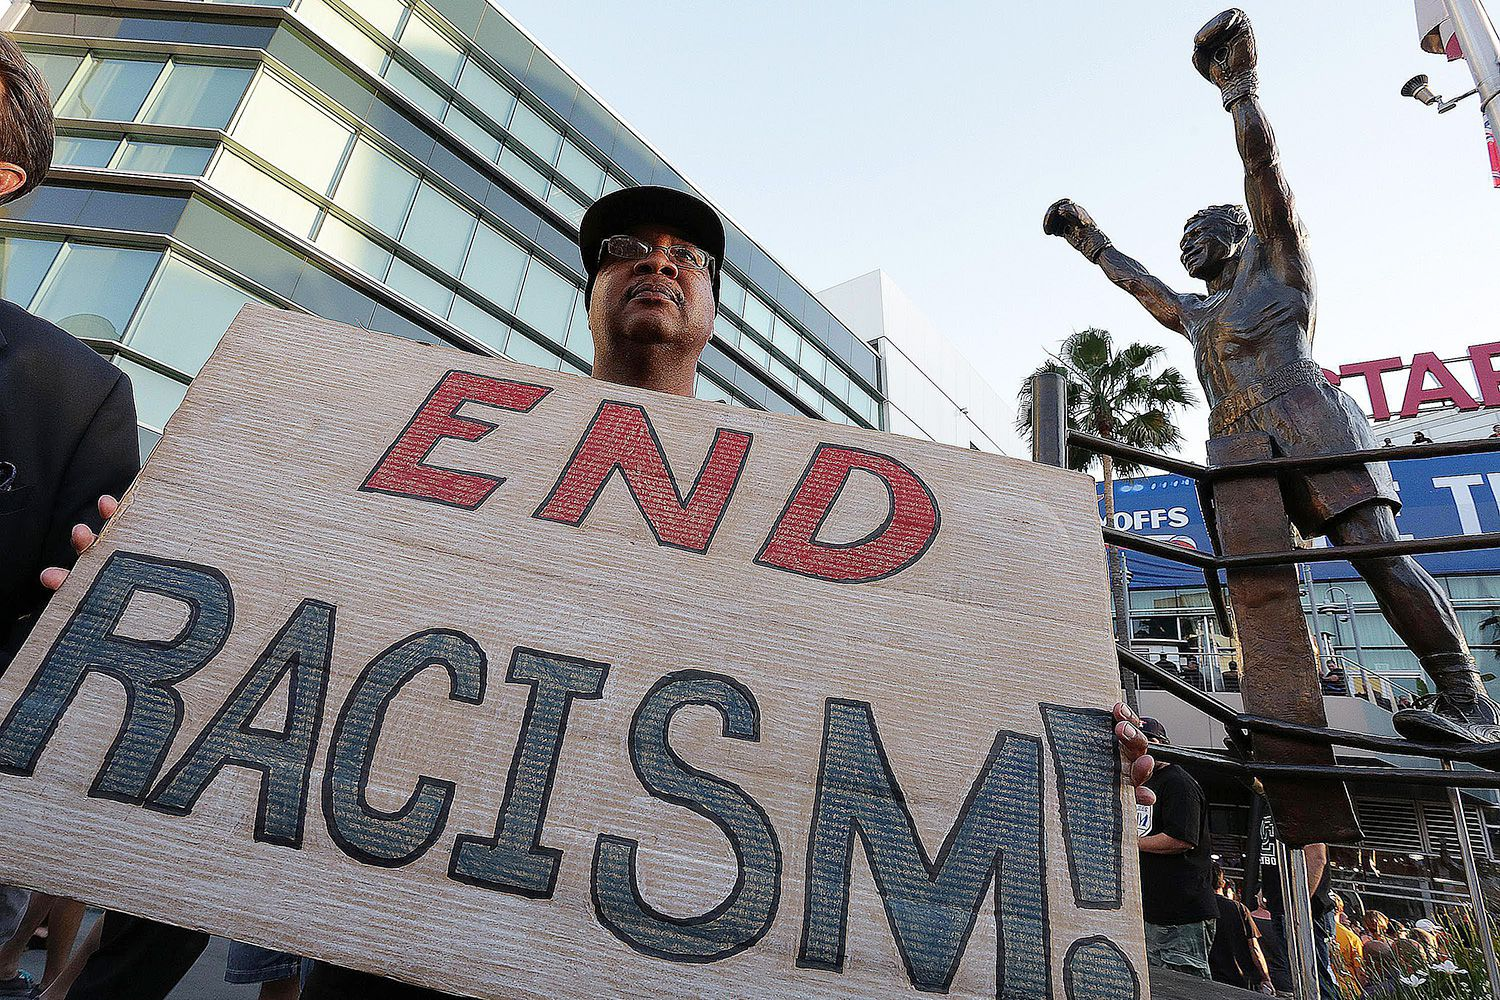 prejudice america Roughly half of americans say racism is a big problem in society today, according to a new nationwide poll conducted by cnn and the kaiser family foundation.